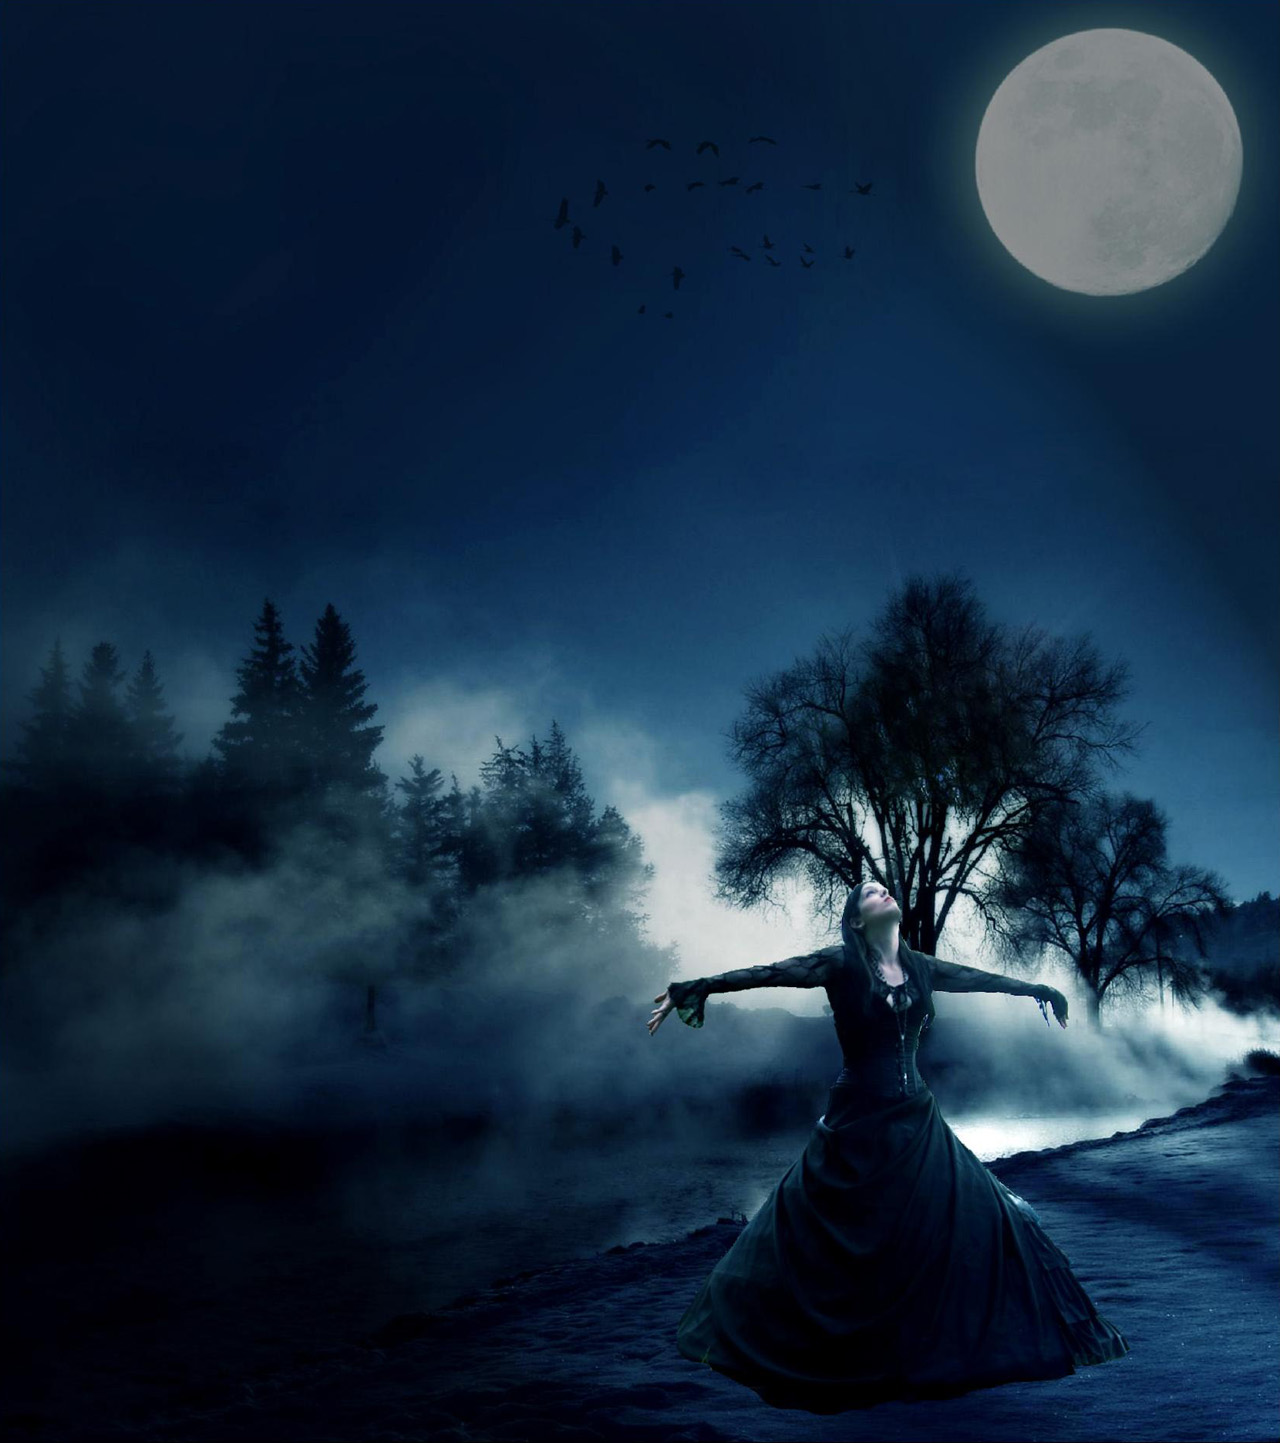 Beautiful Romantic Moonlight Wallpapers, Download Free